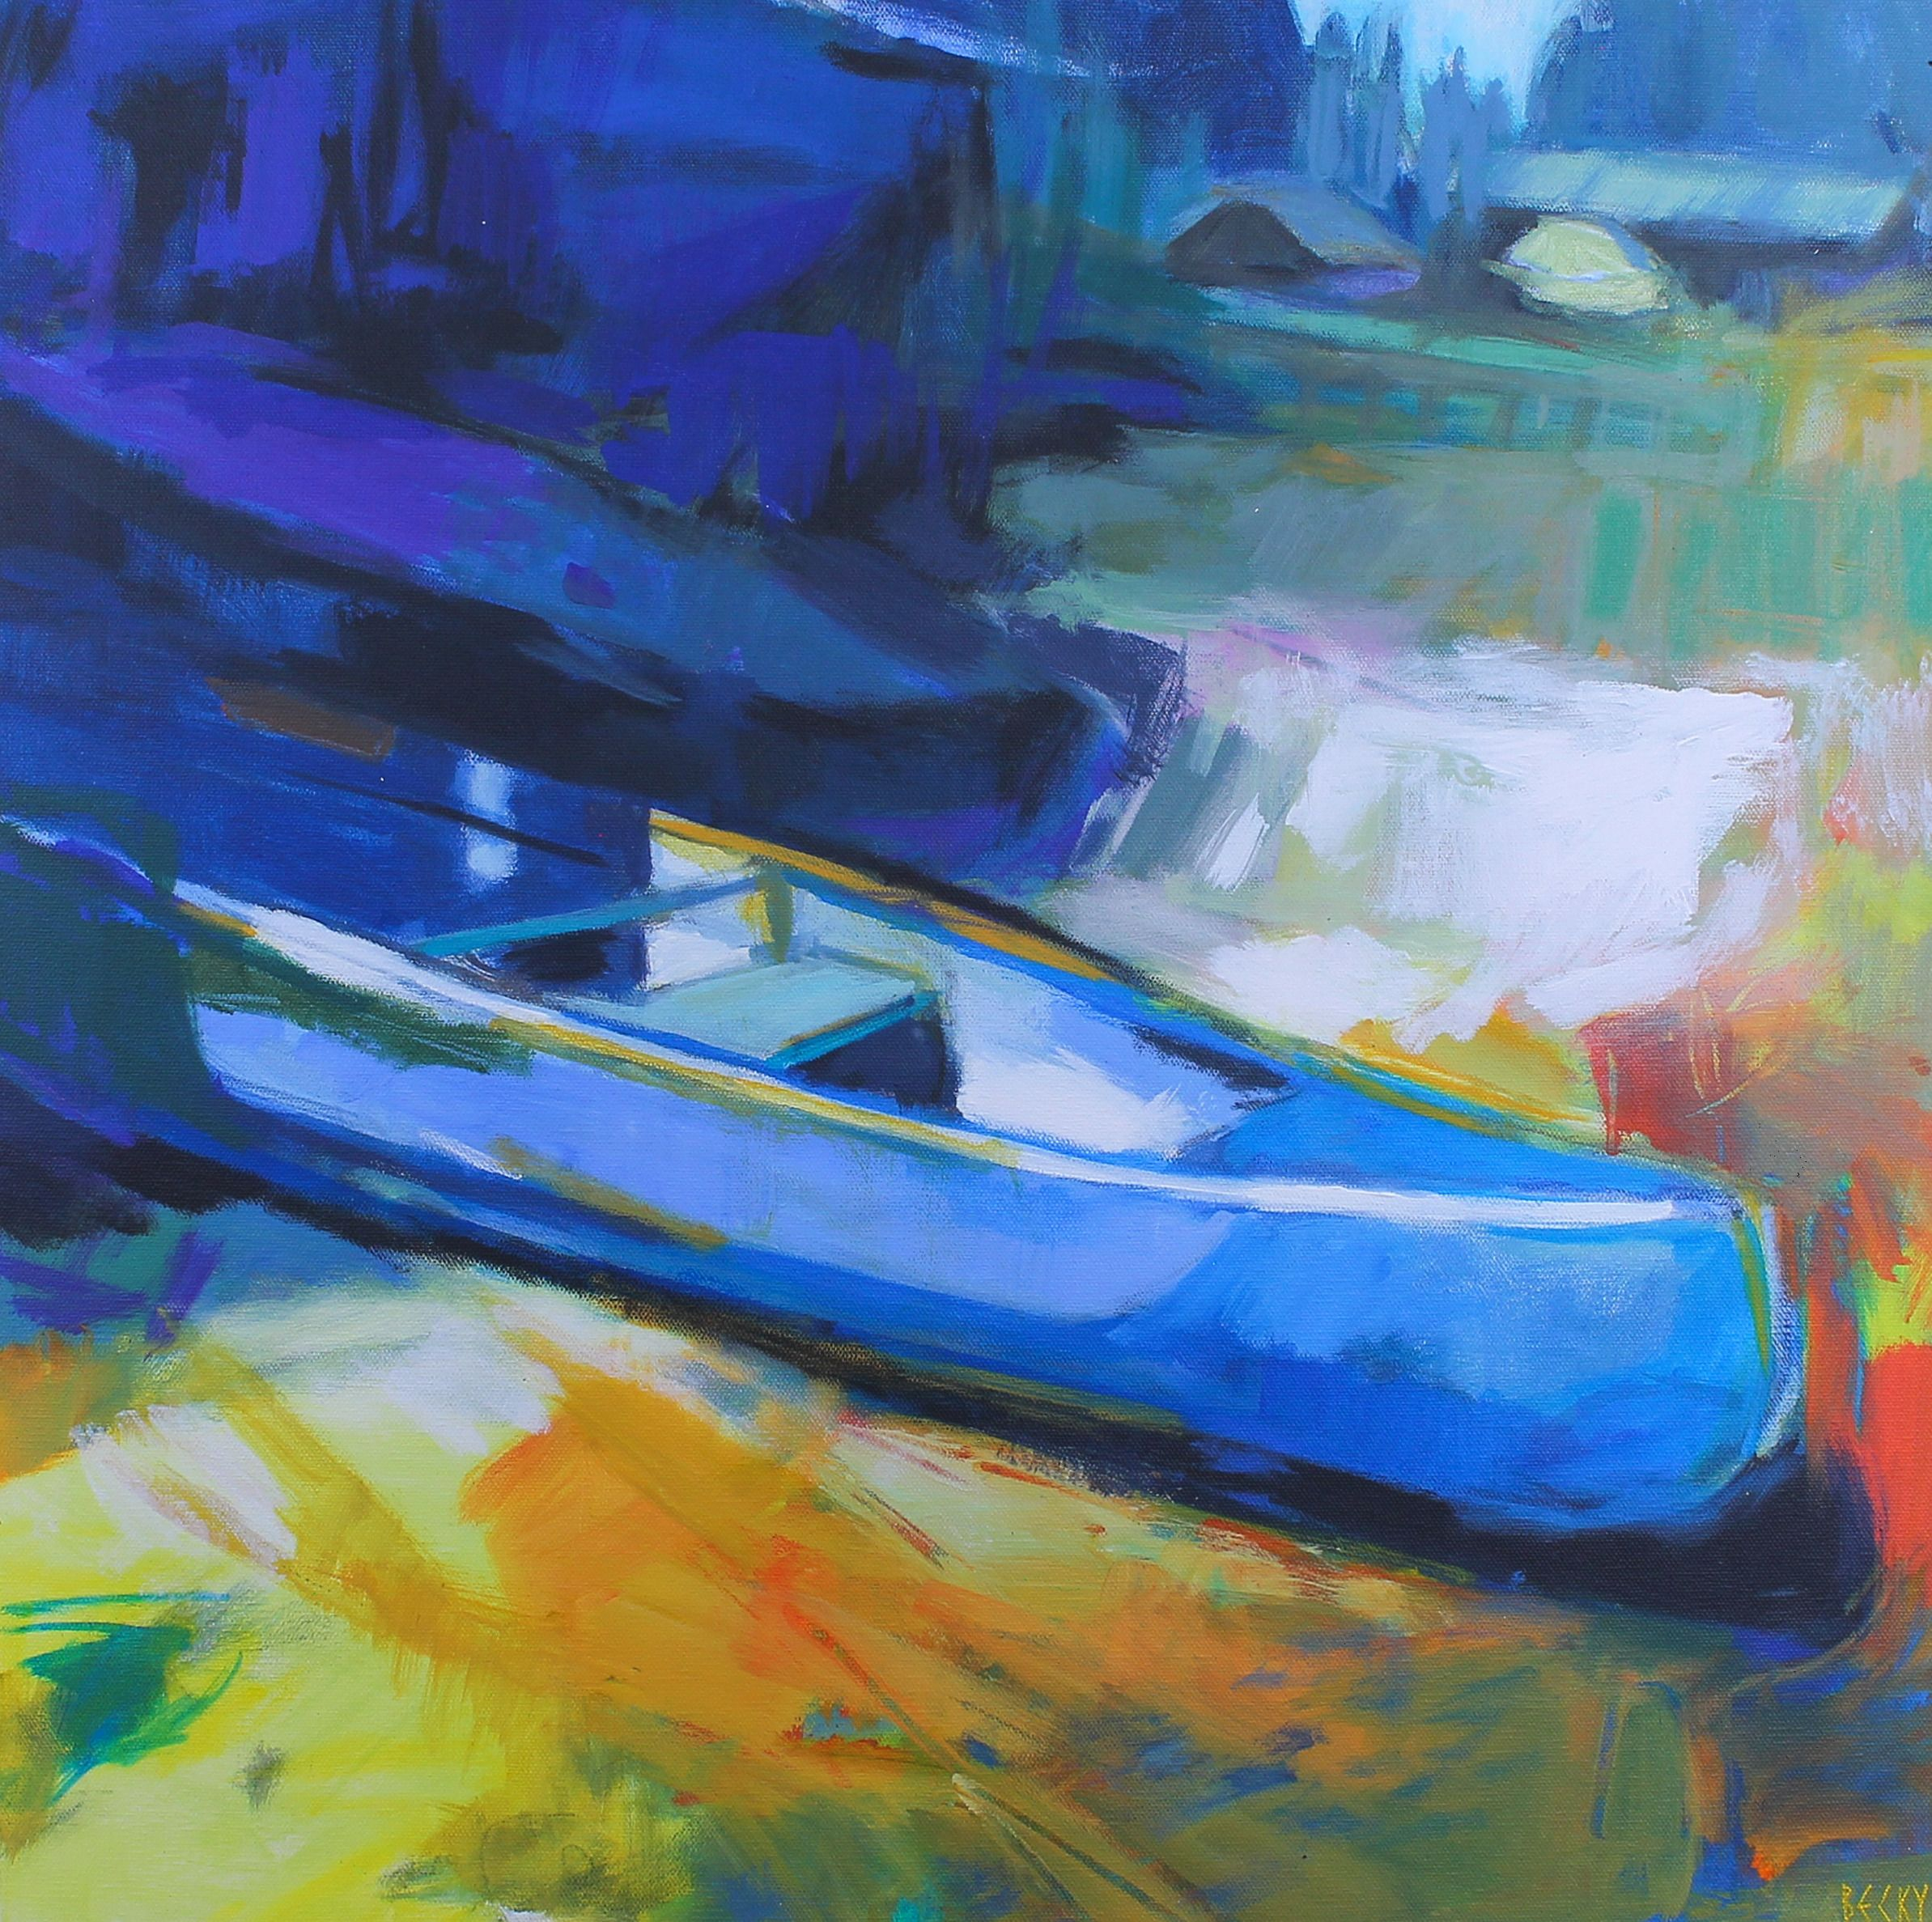 Can You Canoe 1, impressionist canoe painting by Becky Holuk | Effusion Art Gallery +  Glass Studio, Invermere BC